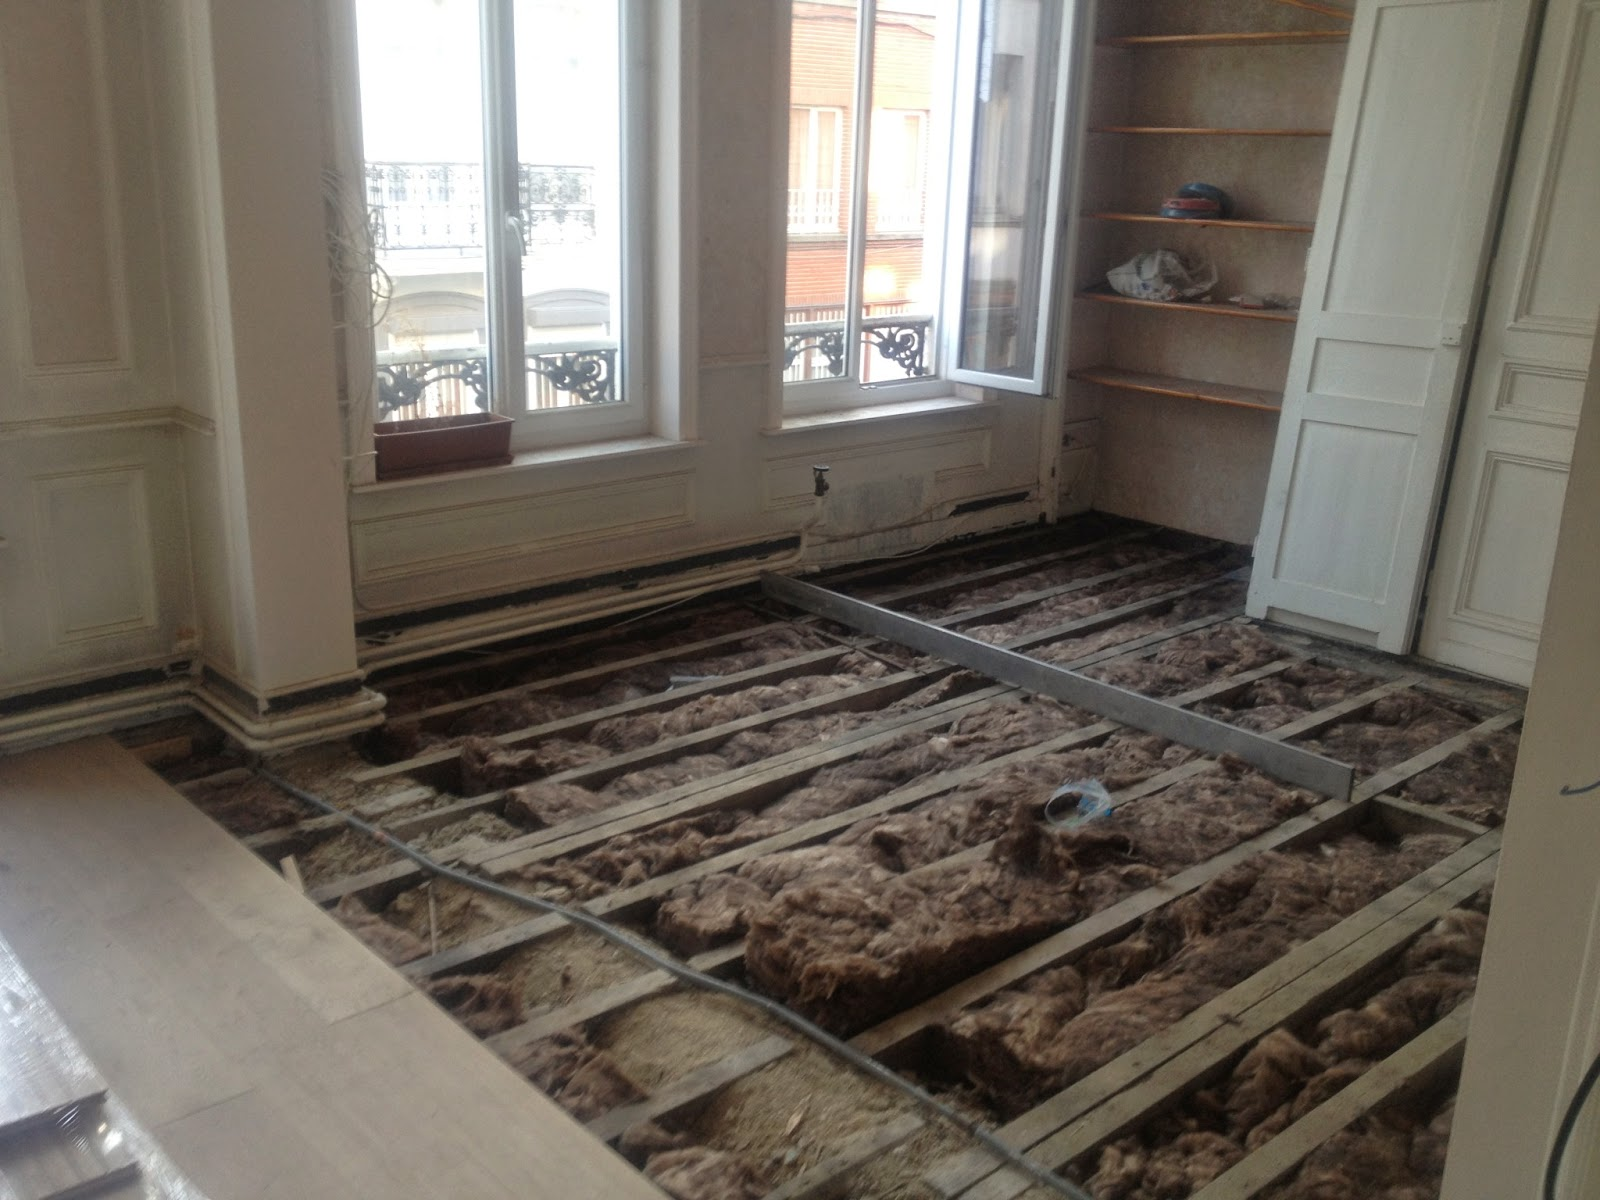 Jacques lenain architecte lille r novation d 39 une ancienne - Renovation parquet ancien ...